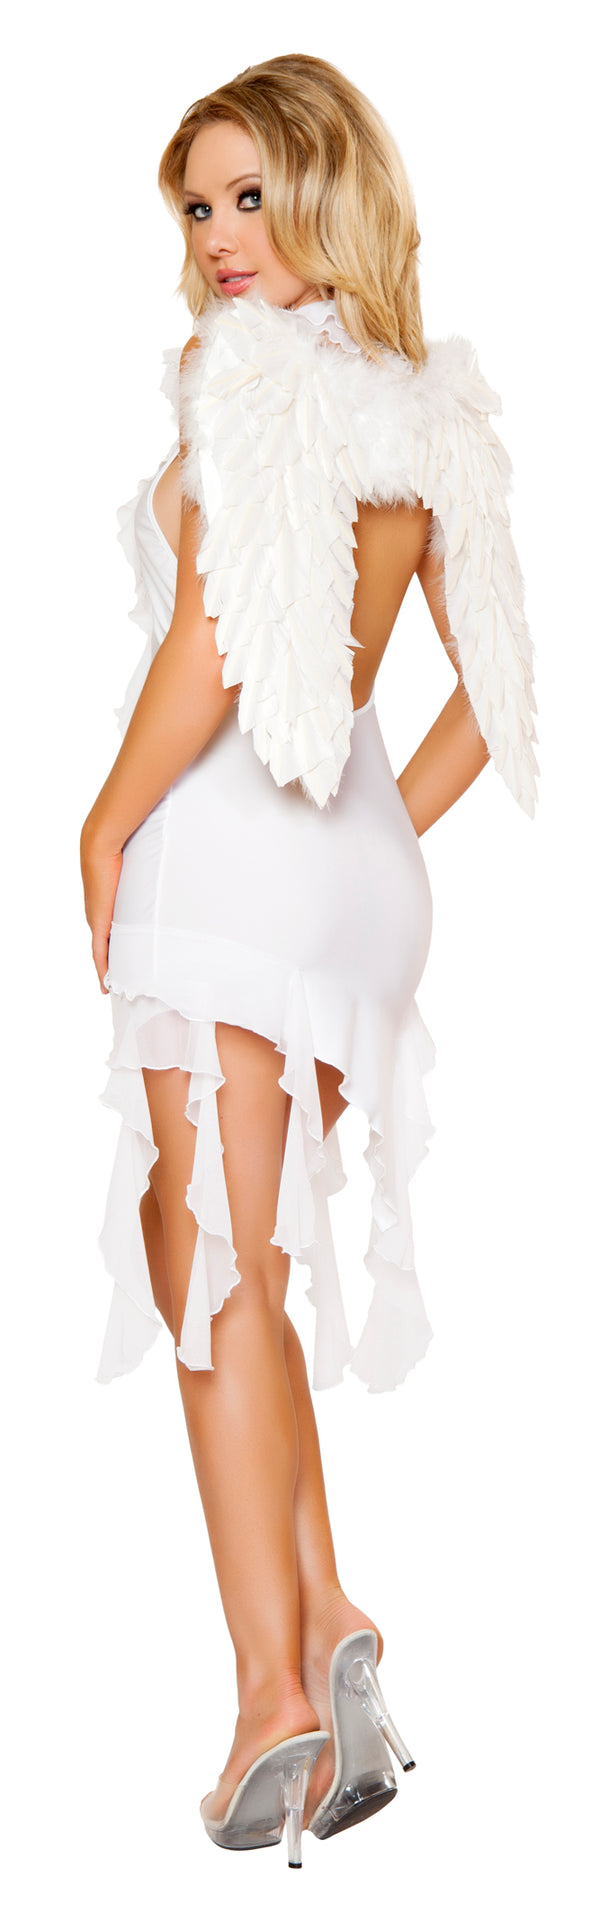 One Piece Angelic Maiden White Back RM4440